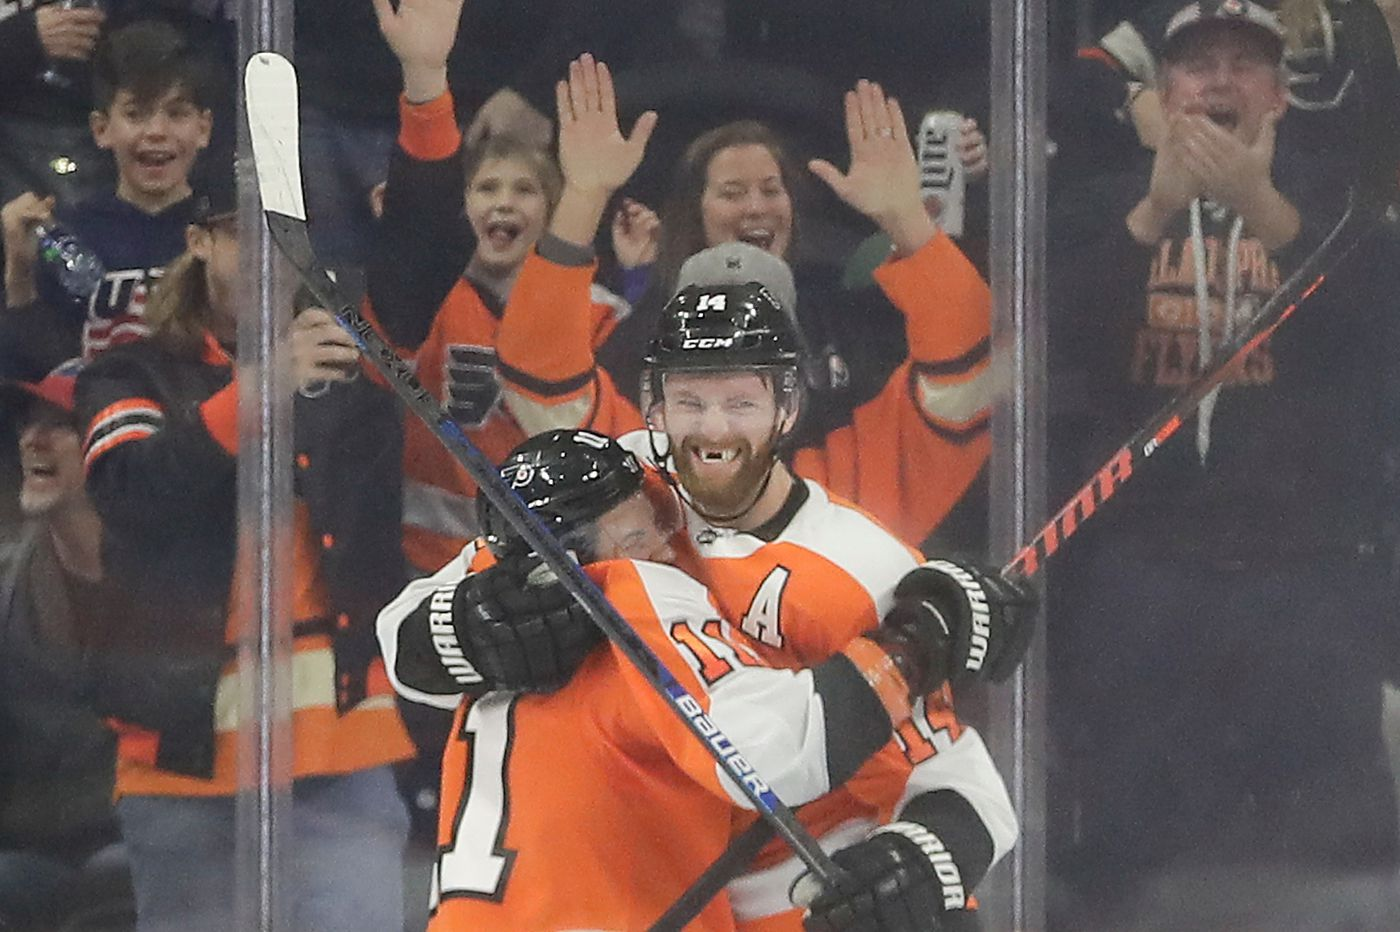 Flyers outlast Montreal, Carey Price, 3-2, on Sean Couturier's OT goal